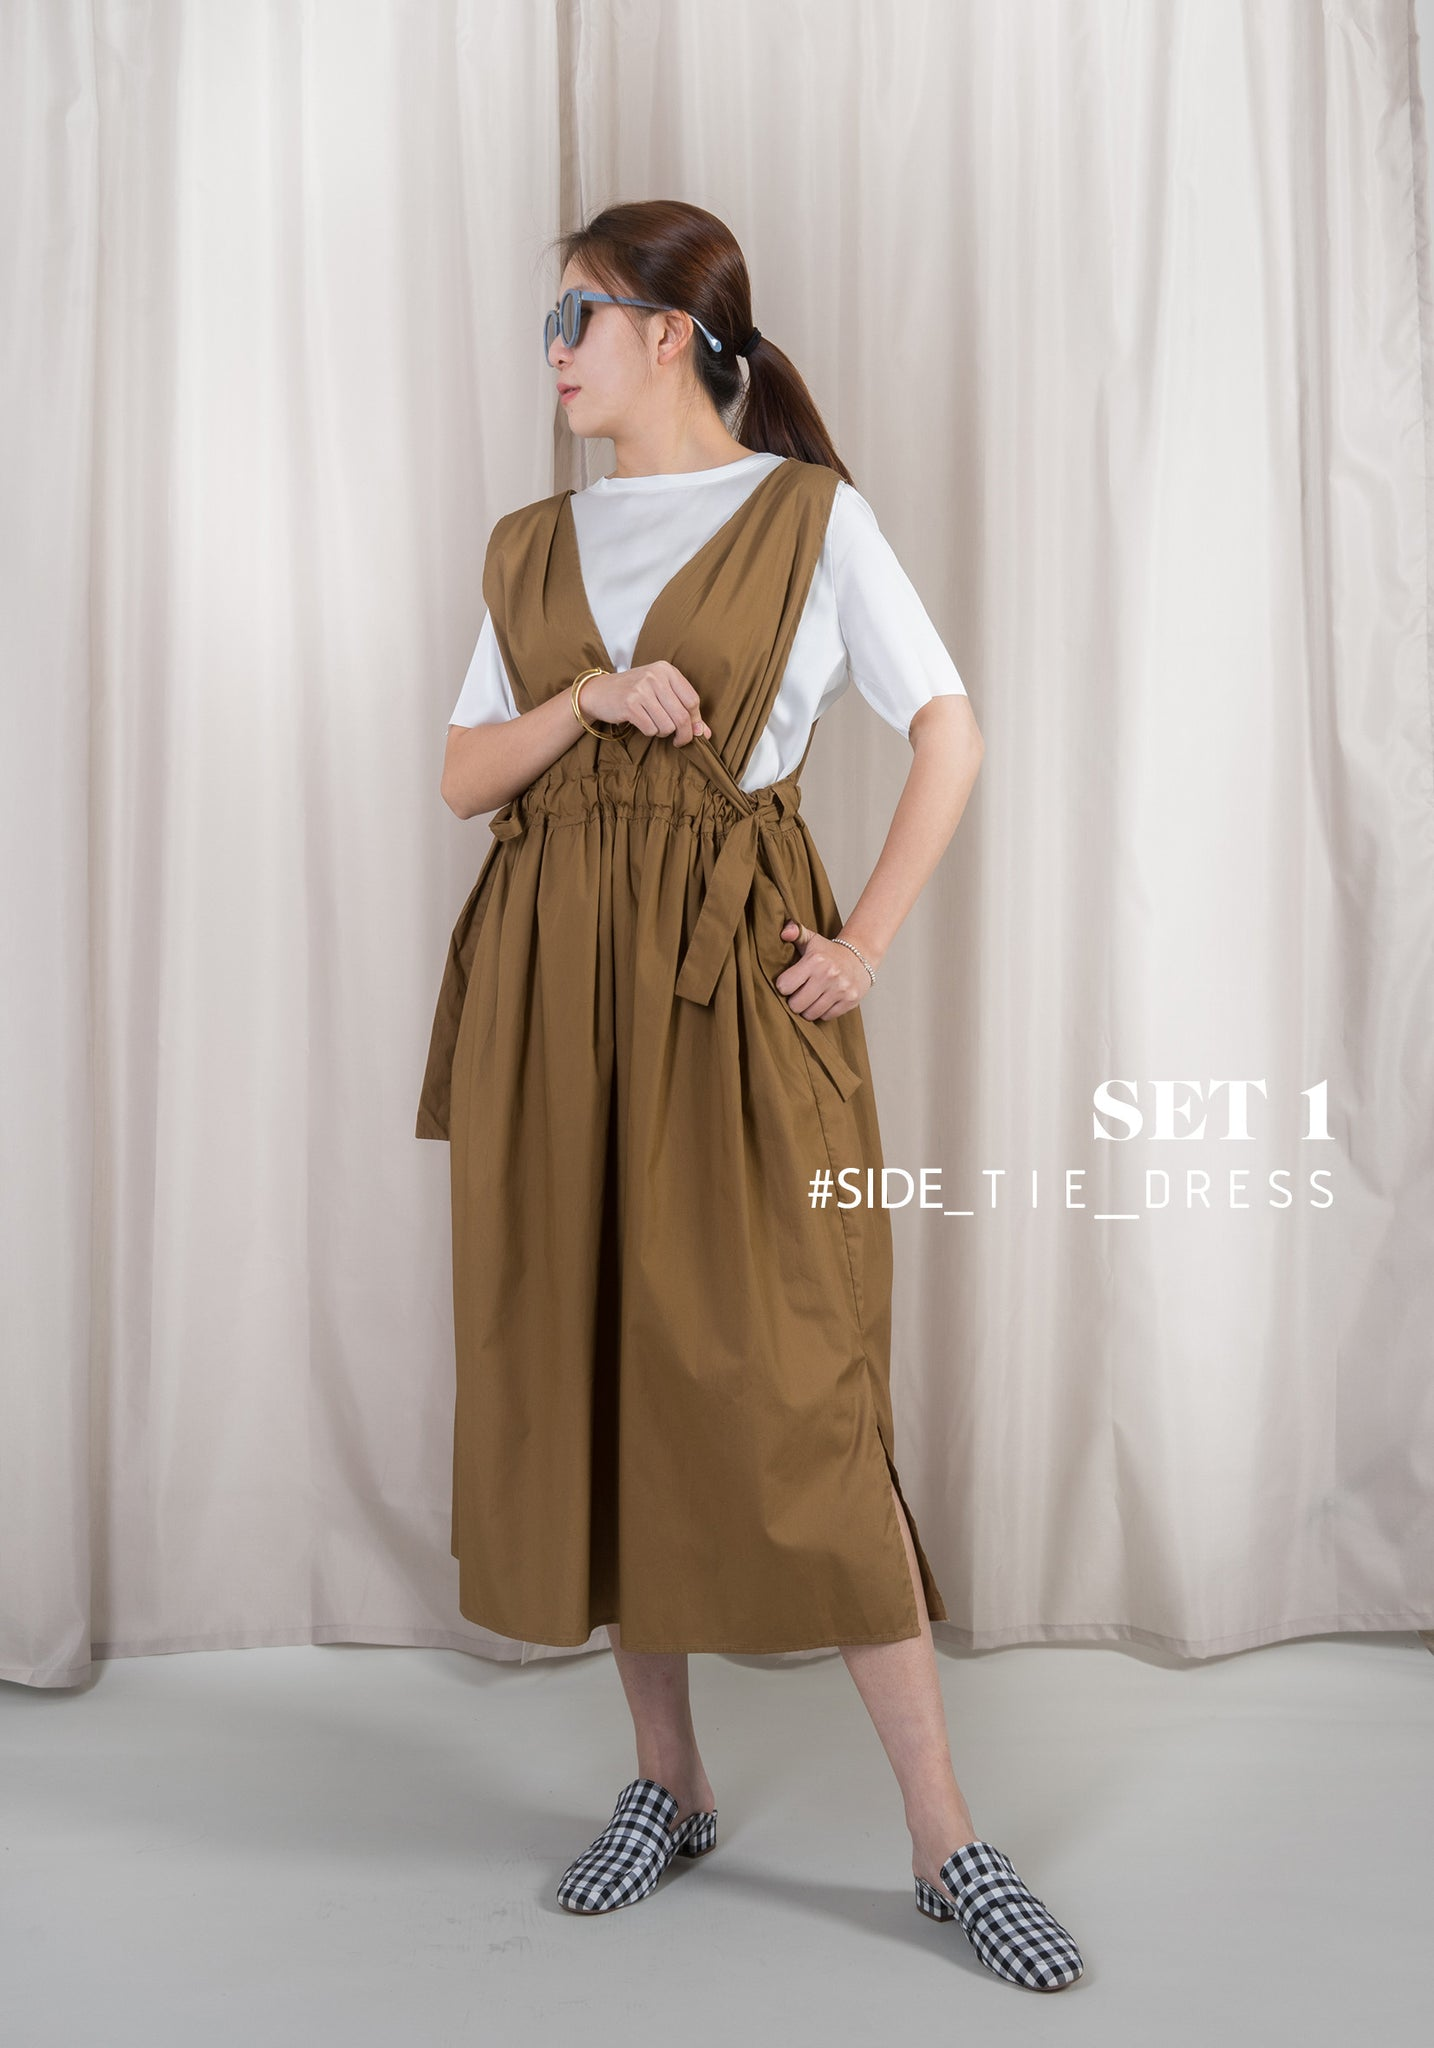 Side Tie Dress Set 1